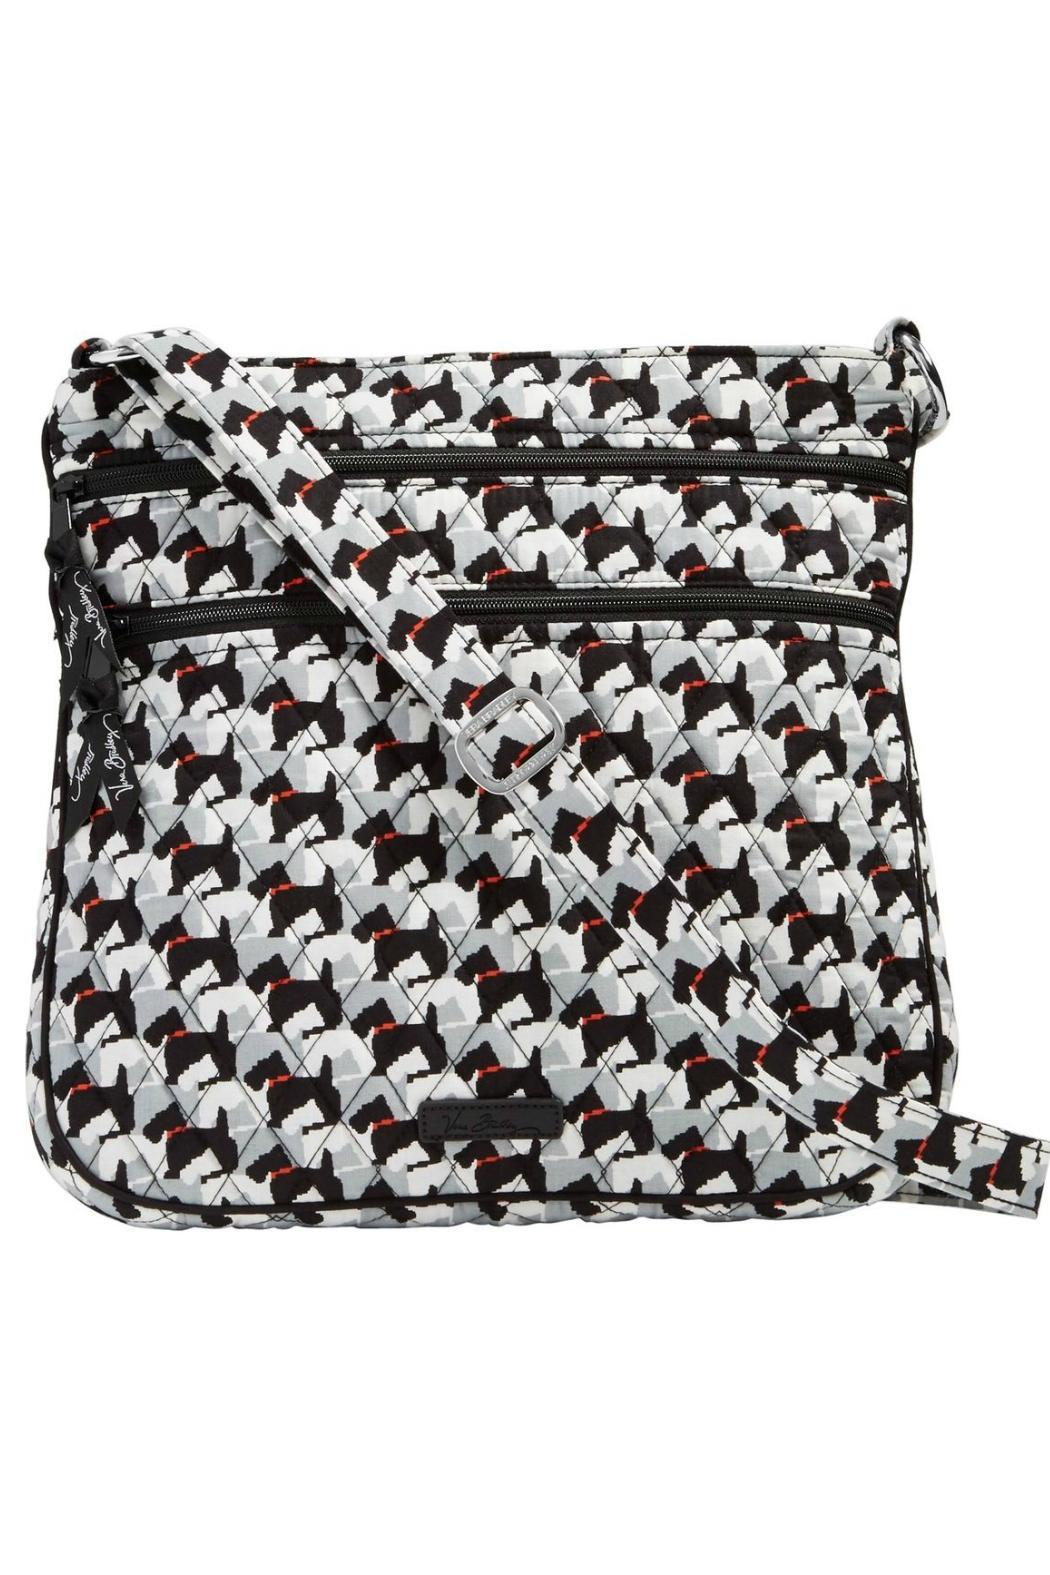 Vera Bradley Scottie Dogs Triple-Zip - Main Image